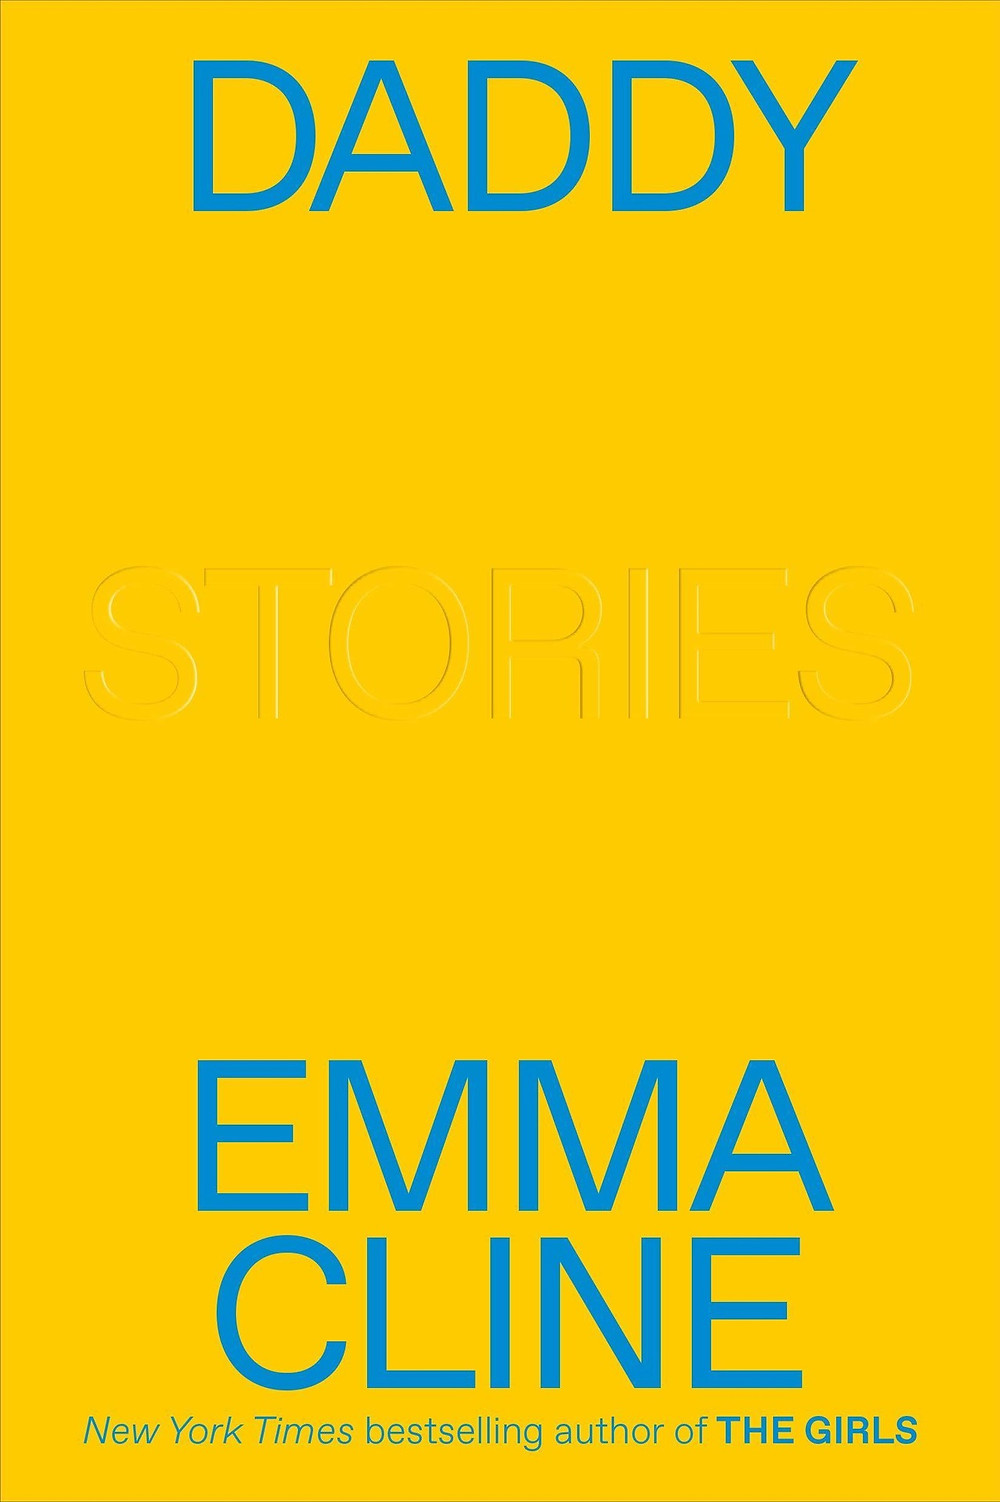 """Daddy: Stories by Emma Cline. From the New York Times bestselling author of The Girls comes an eagerly anticipated story collection exploring the dark corners of human experience. """"A thrilling new voice in American fiction.""""--Jennifer Egan, about The Girls An absentee father collects his son from boarding school after a shocking act of violence. A nanny to a celebrity family hides out in Laurel Canyon in the aftermath of a tabloid scandal. A young woman sells her underwear to strangers. A notorious guest arrives at a placid, not-quite rehab in the Southwest. In ten remarkable stories, Emma Cline portrays moments when the ordinary is disturbed, when daily life buckles, revealing the perversity and violence pulsing under the surface. She explores characters navigating the edge, the limits of themselves and those around them: power dynamics in families, in relationships, the distance between their true and false selves. They want connection, but what they provoke is often closer to self-sabotage. What are the costs of one's choices? Of the moments when we act, or fail to act? These complexities are at the heart of Daddy, Emma Cline's sharp-eyed illumination of the contrary impulses that animate our inner lives. The Book Slut book reviews . Publisher Random House Publish Date September 01, 2020 Pages 288 Dimensions 5.8 X 1.2 X 8.4 inches 